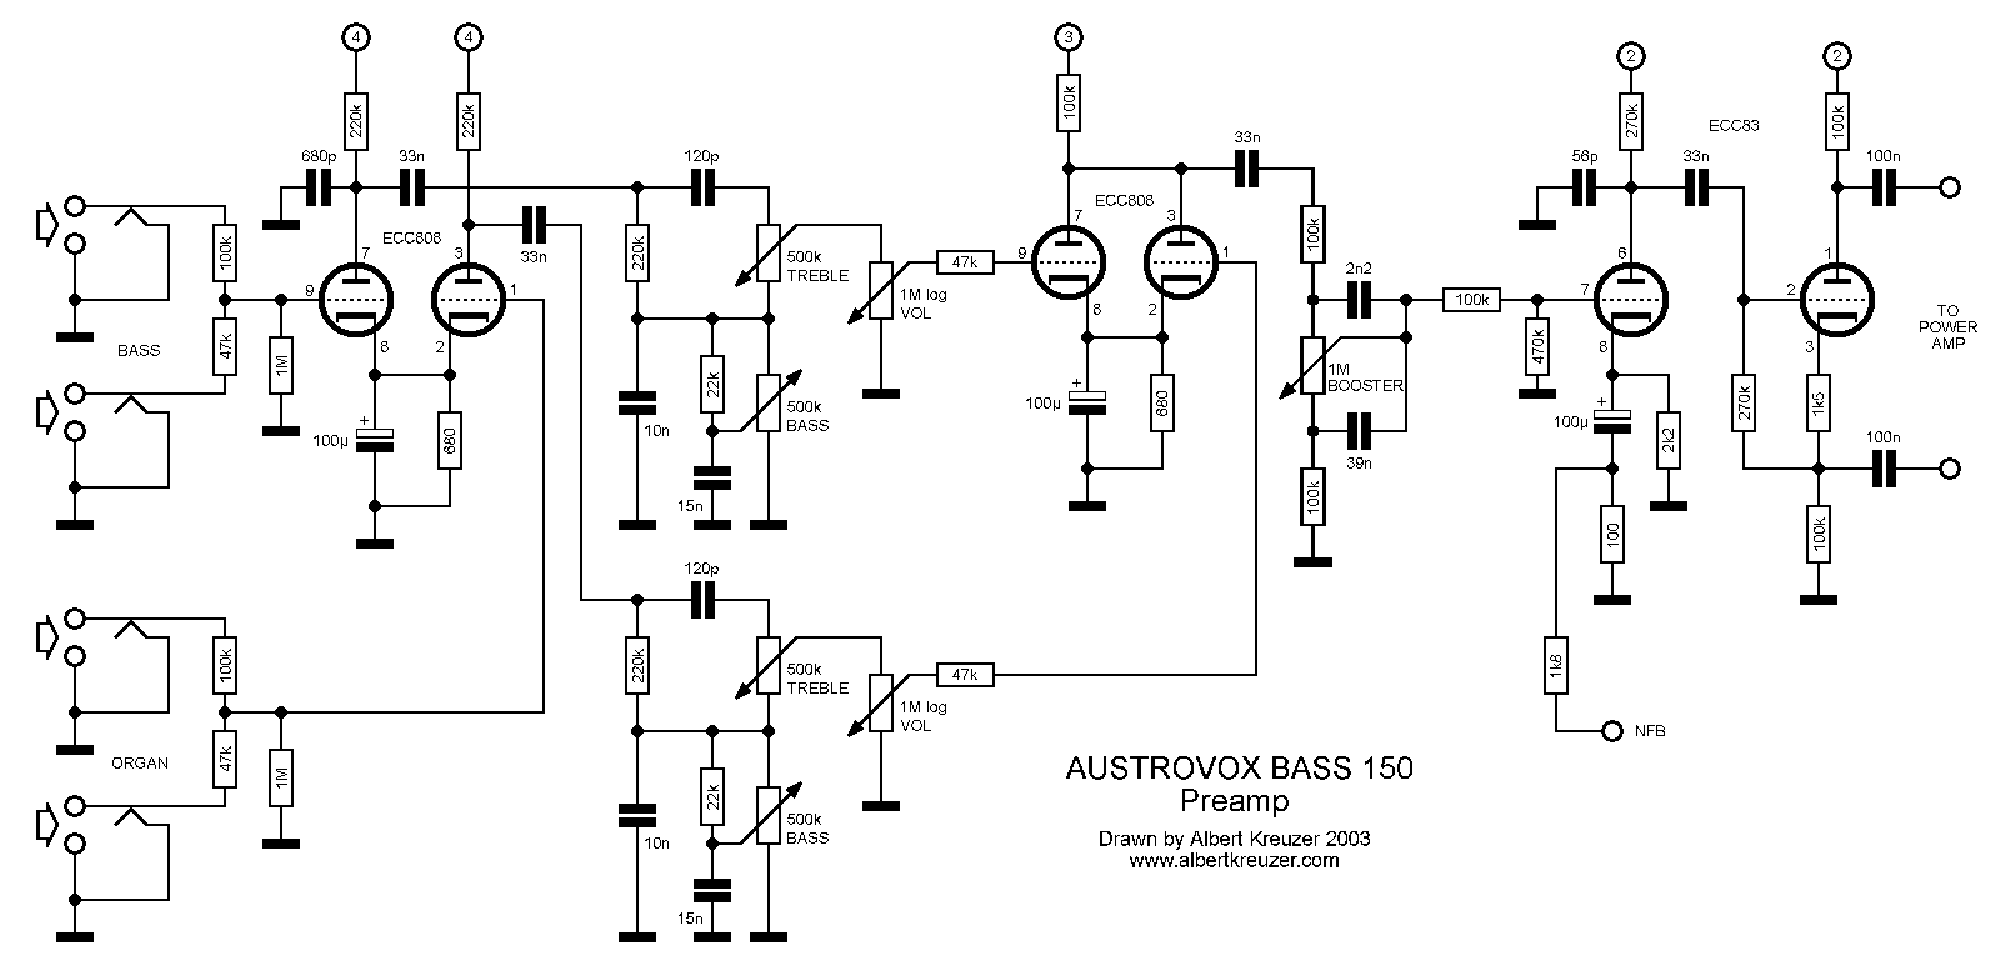 AUSTROVOX BASS 150 PREAMP 2003 SCH Service Manual download